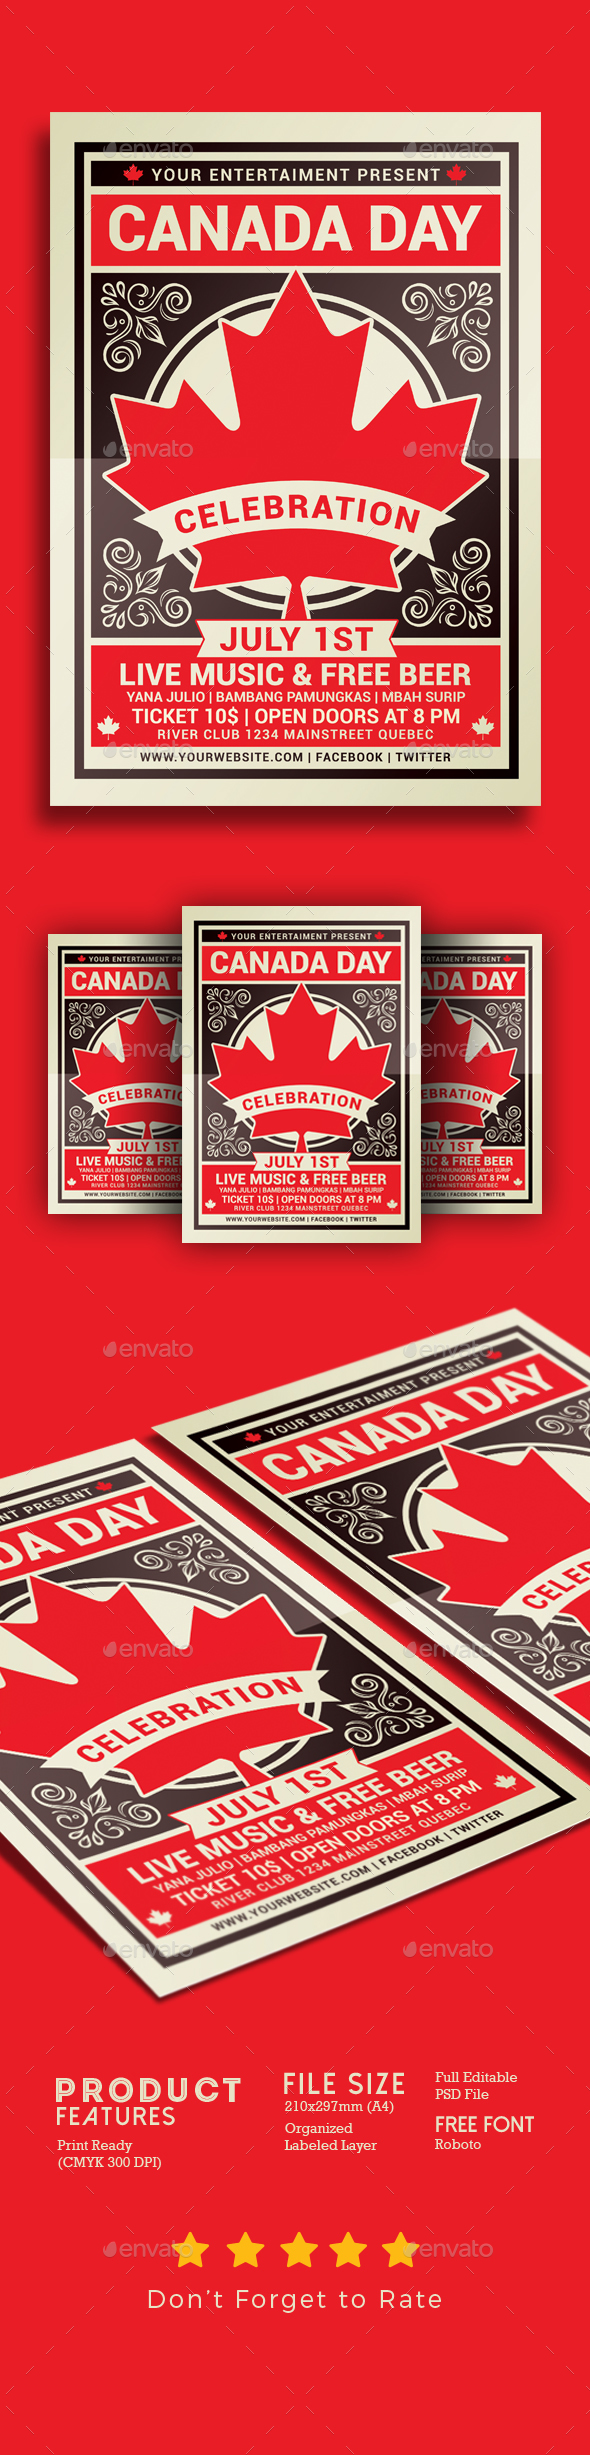 Canada Day Flyer Template - Events Flyers